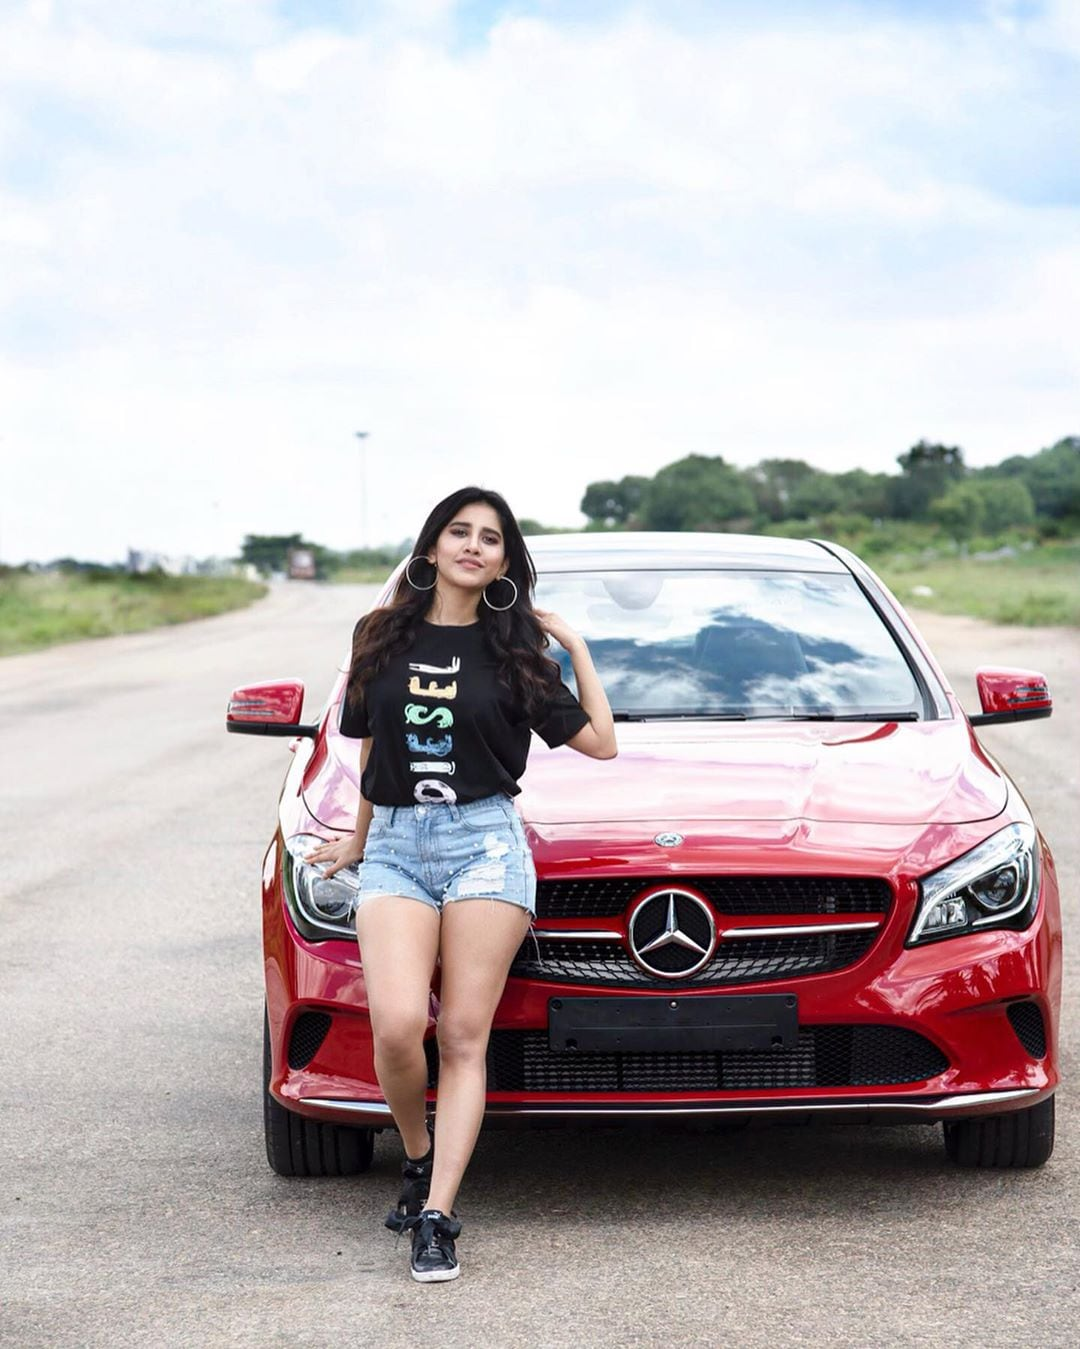 నభా నటేష్ Photo: nabhanatesh/Instagram